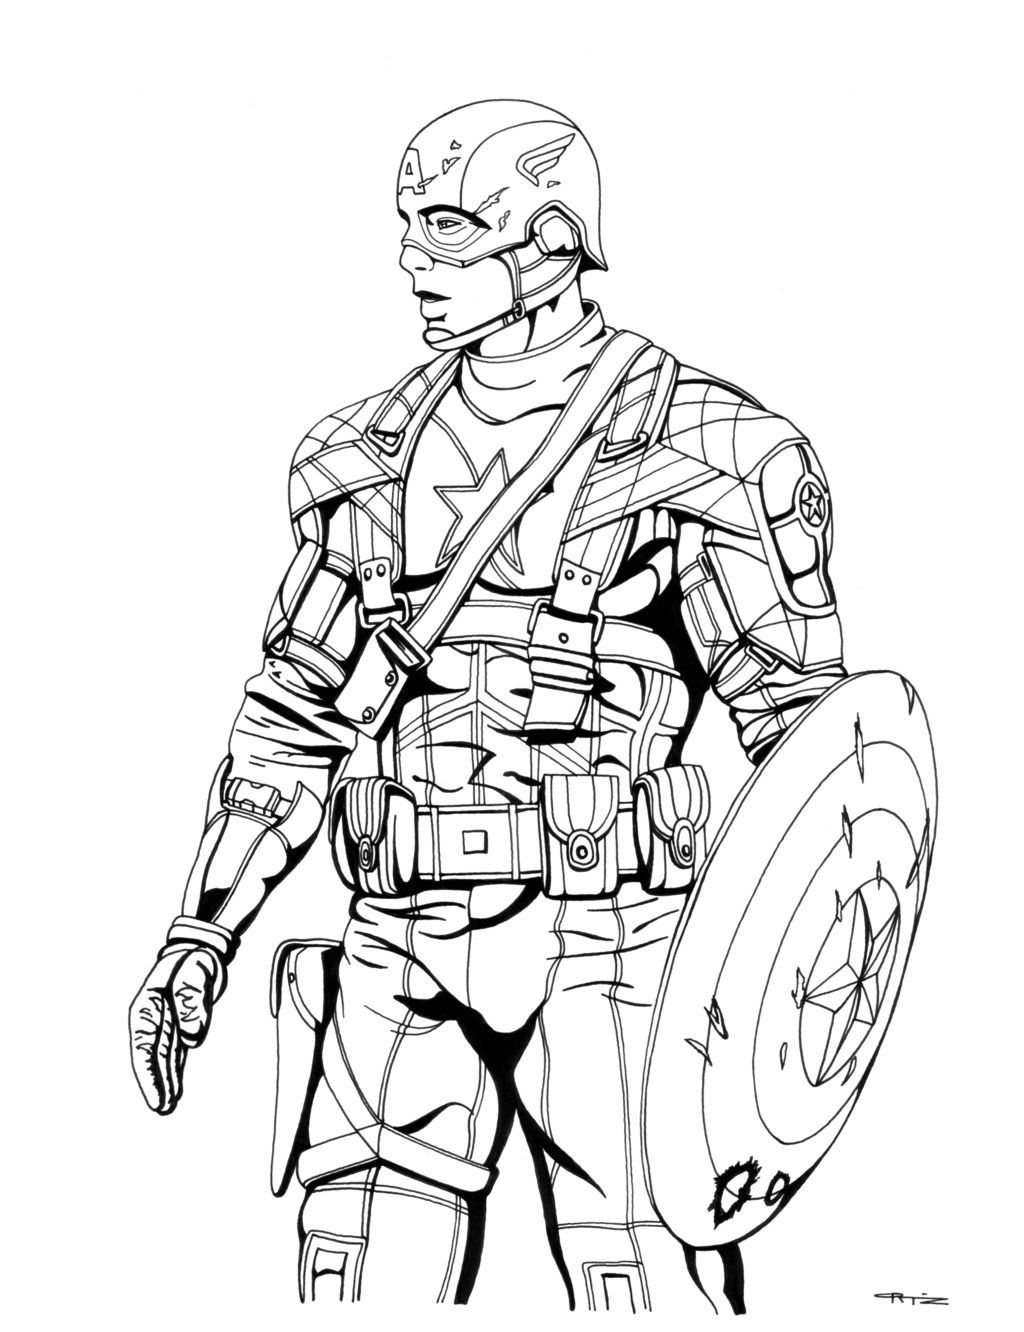 14 Pics Of Captain America Vs Iron Man Coloring Pages Captain